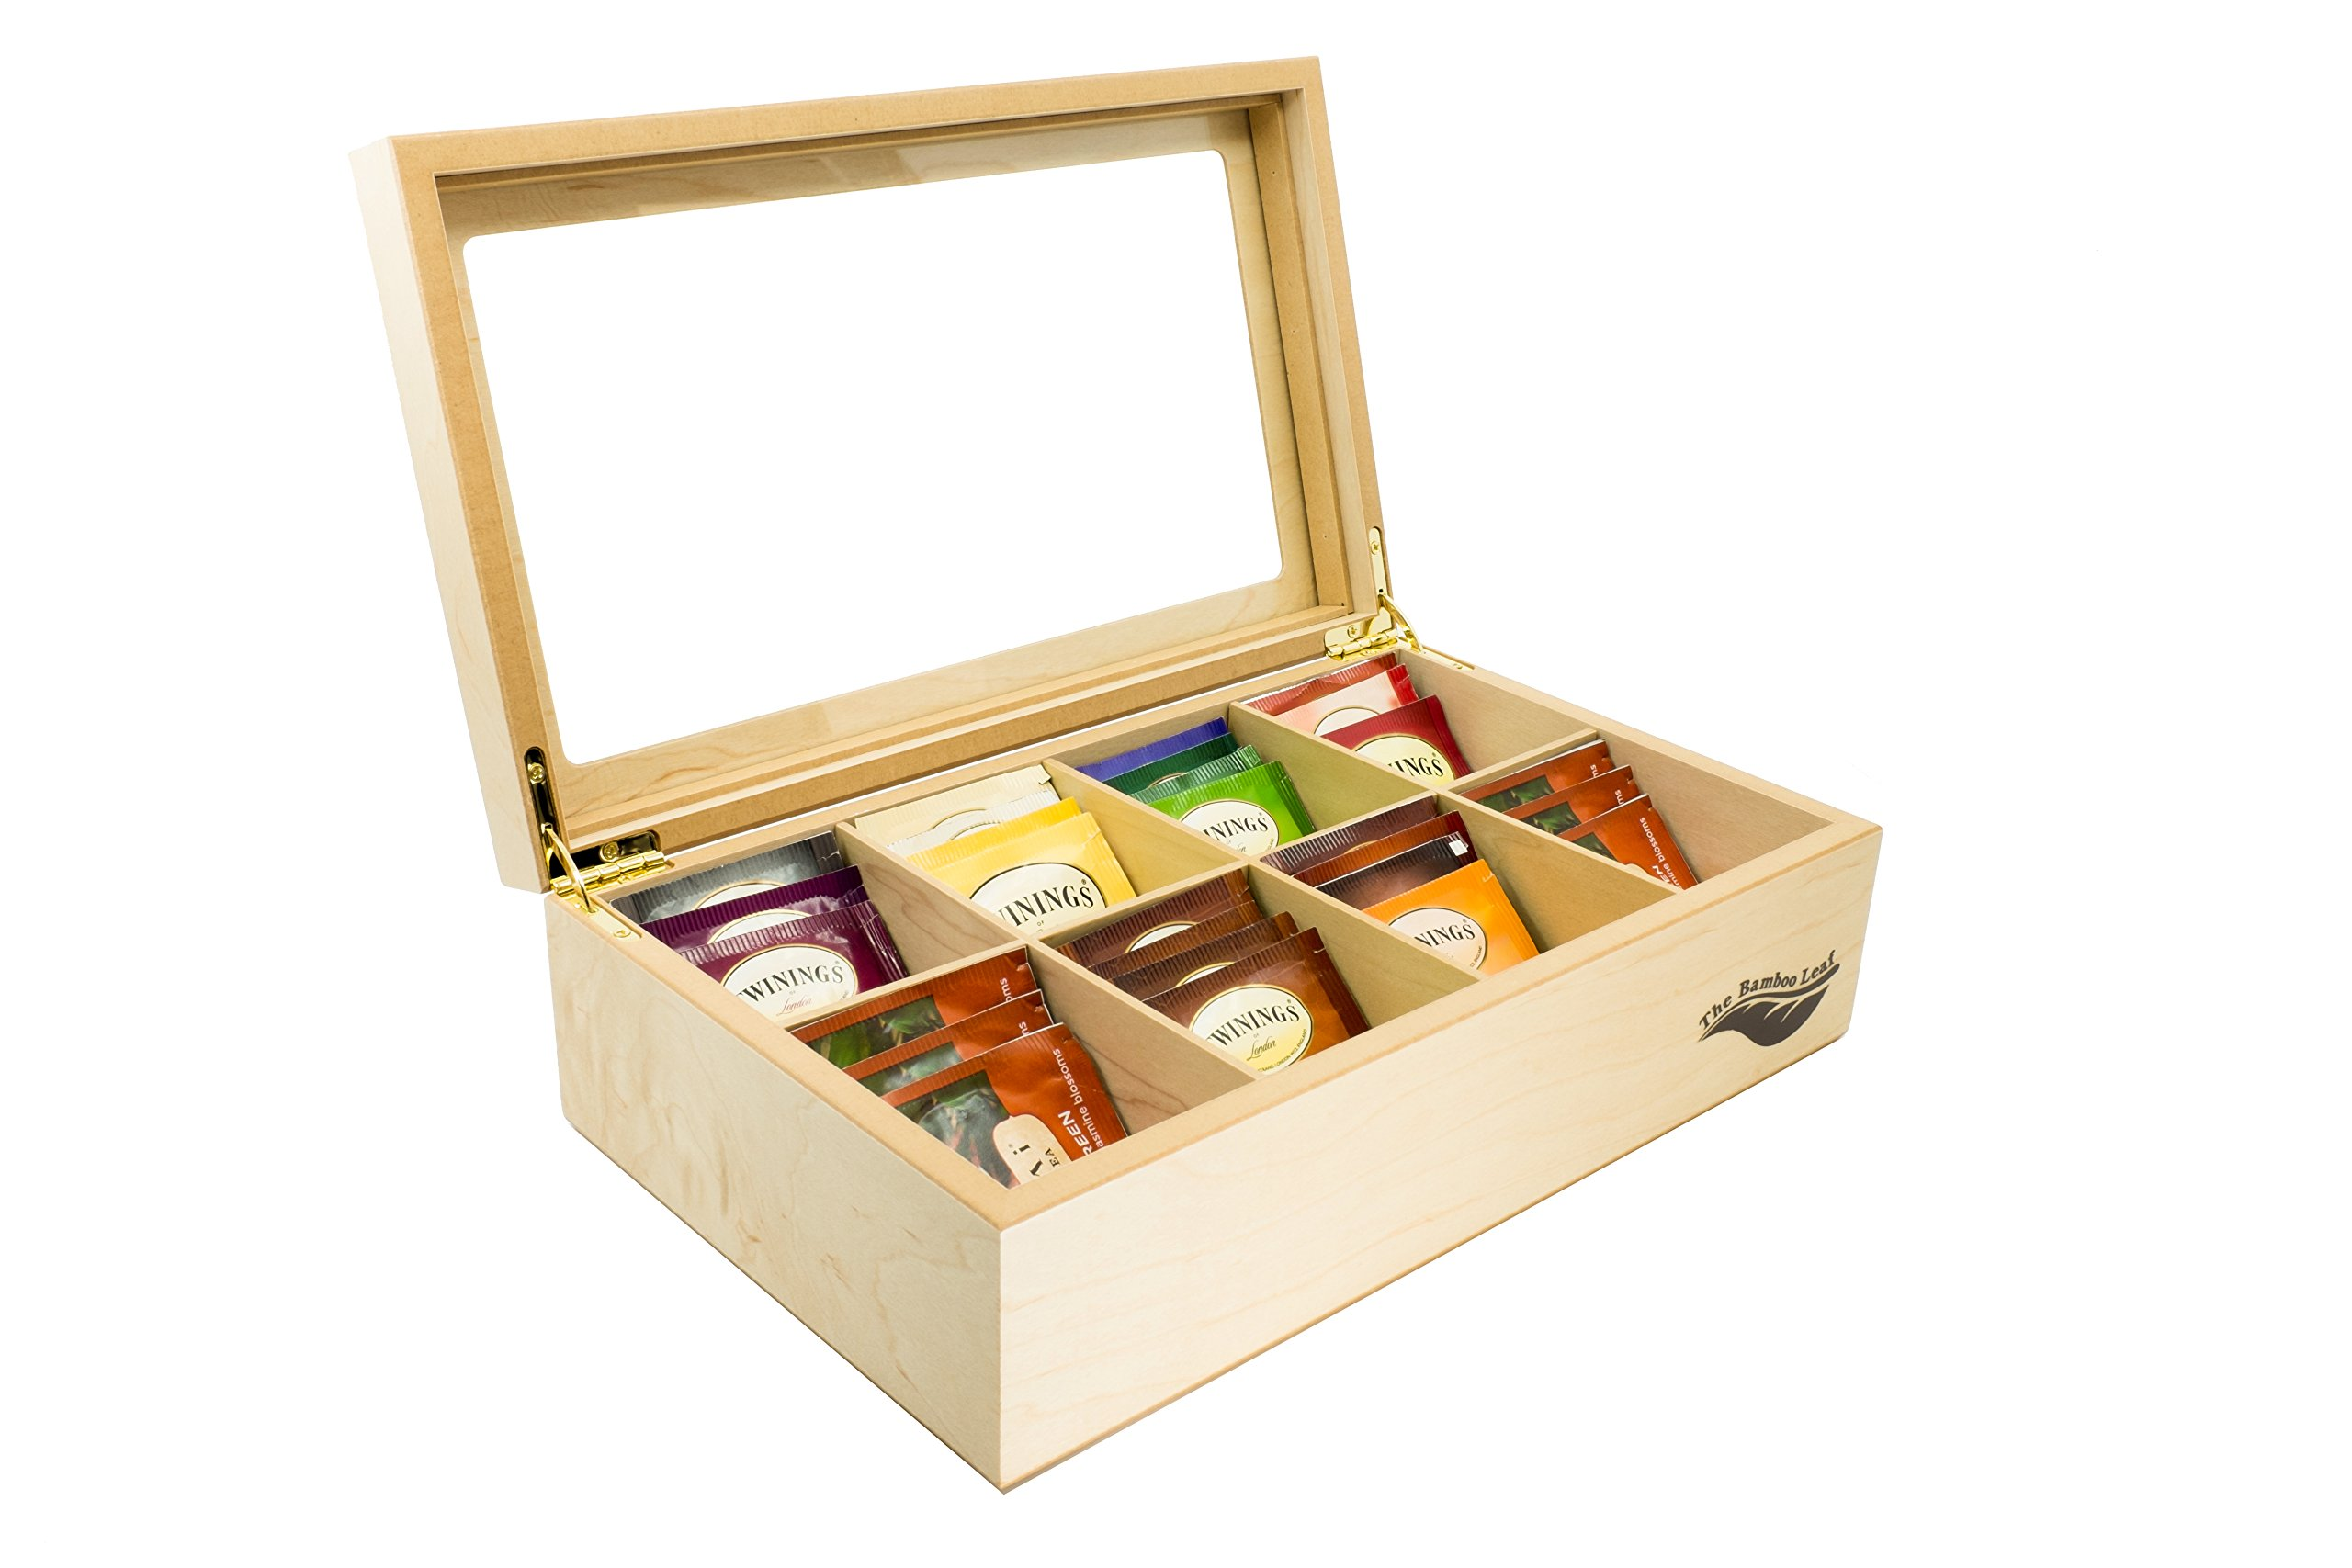 The Bamboo Leaf Luxury Wooden Tea BoxStorage Chest, 8 Compartments w/Glass Window (Natural) by The Bamboo Leaf (Image #1)